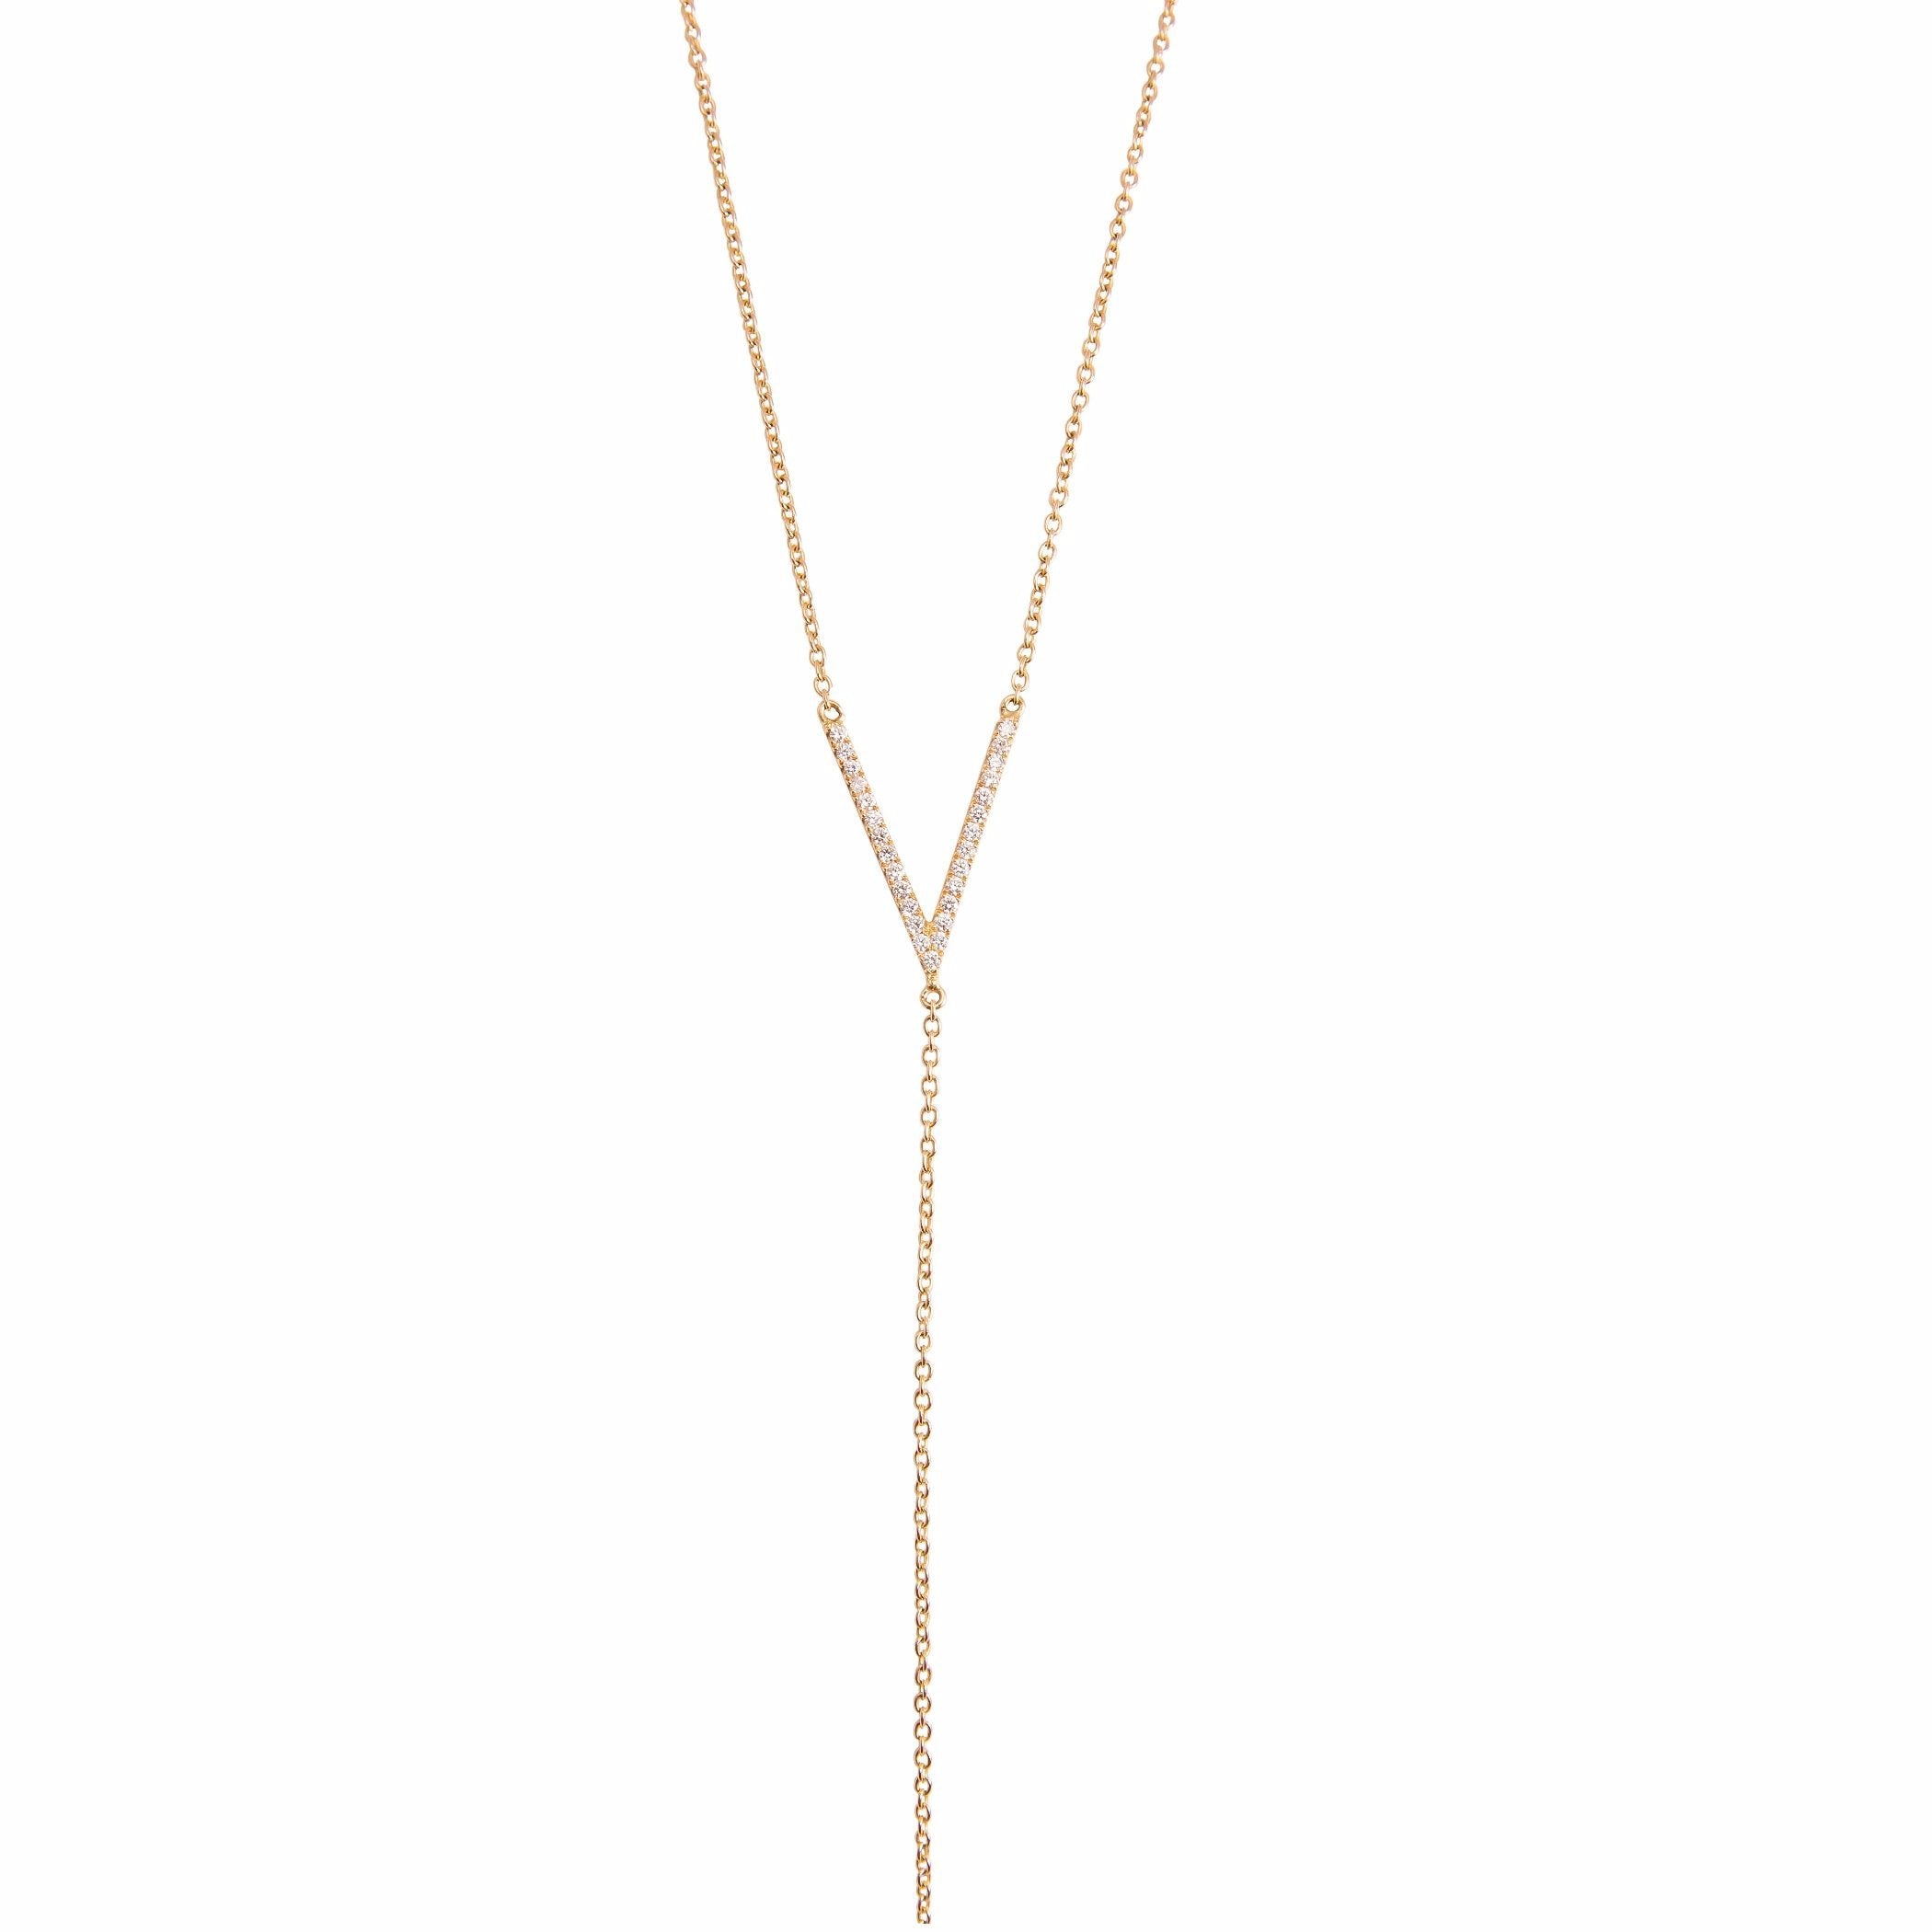 V- Bar Drip Necklace